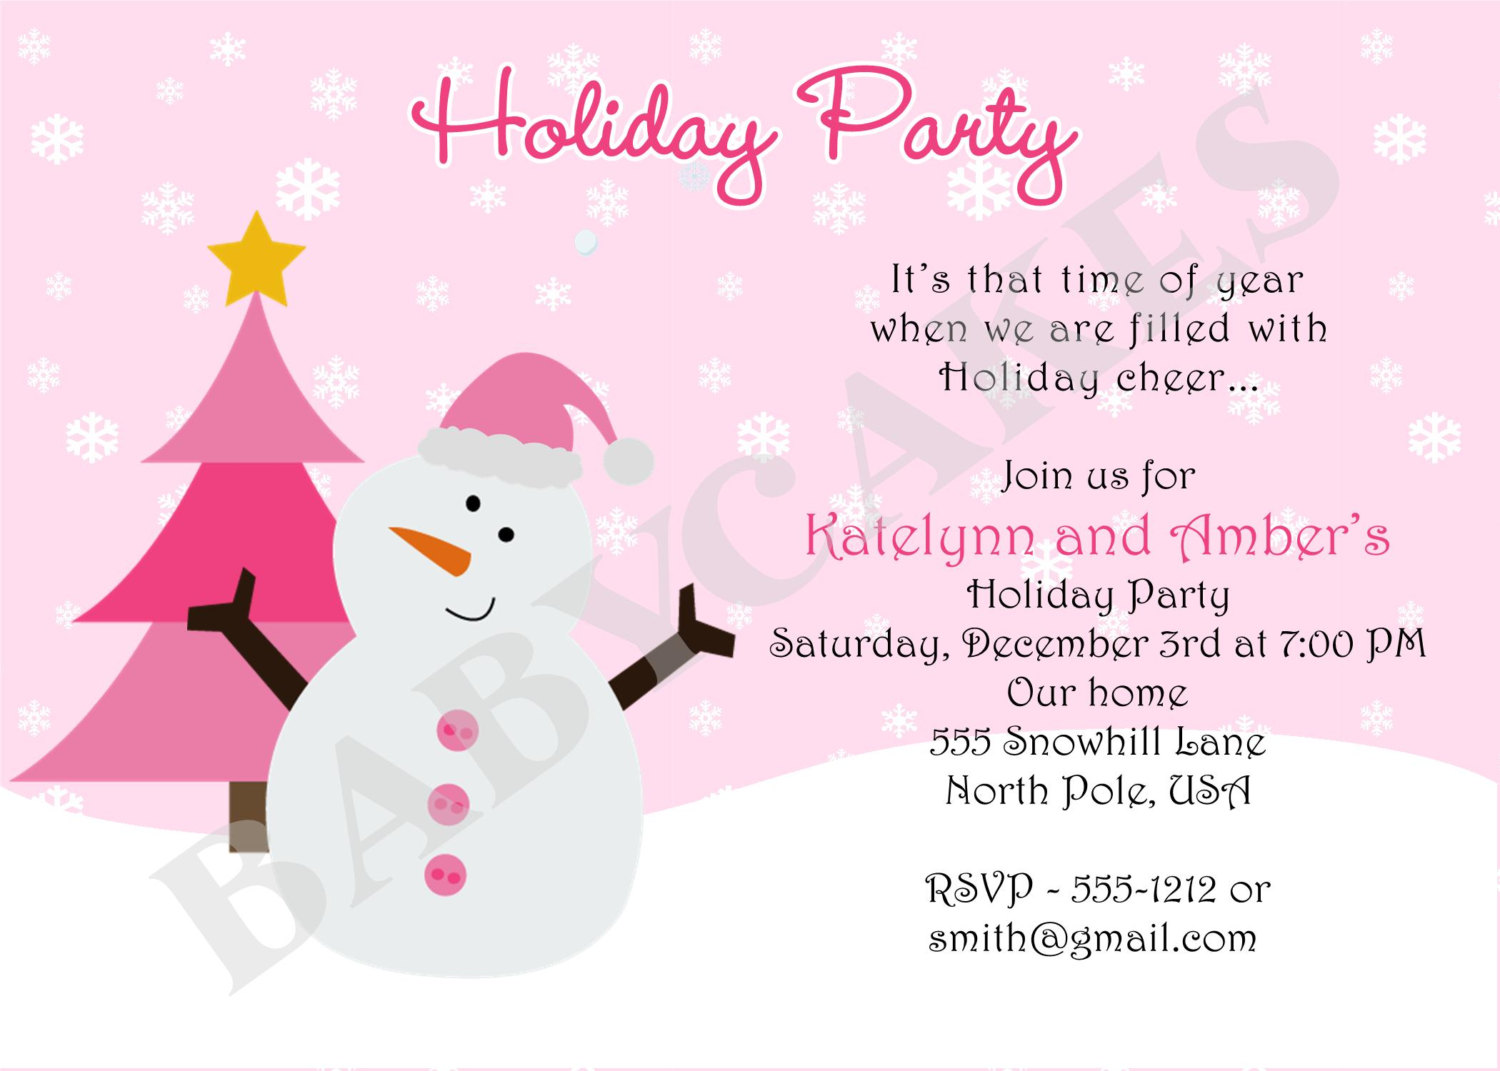 doc 593768 holiday party invite templates christmas party christmas party invitation template theruntime com christmas holiday party invite templates